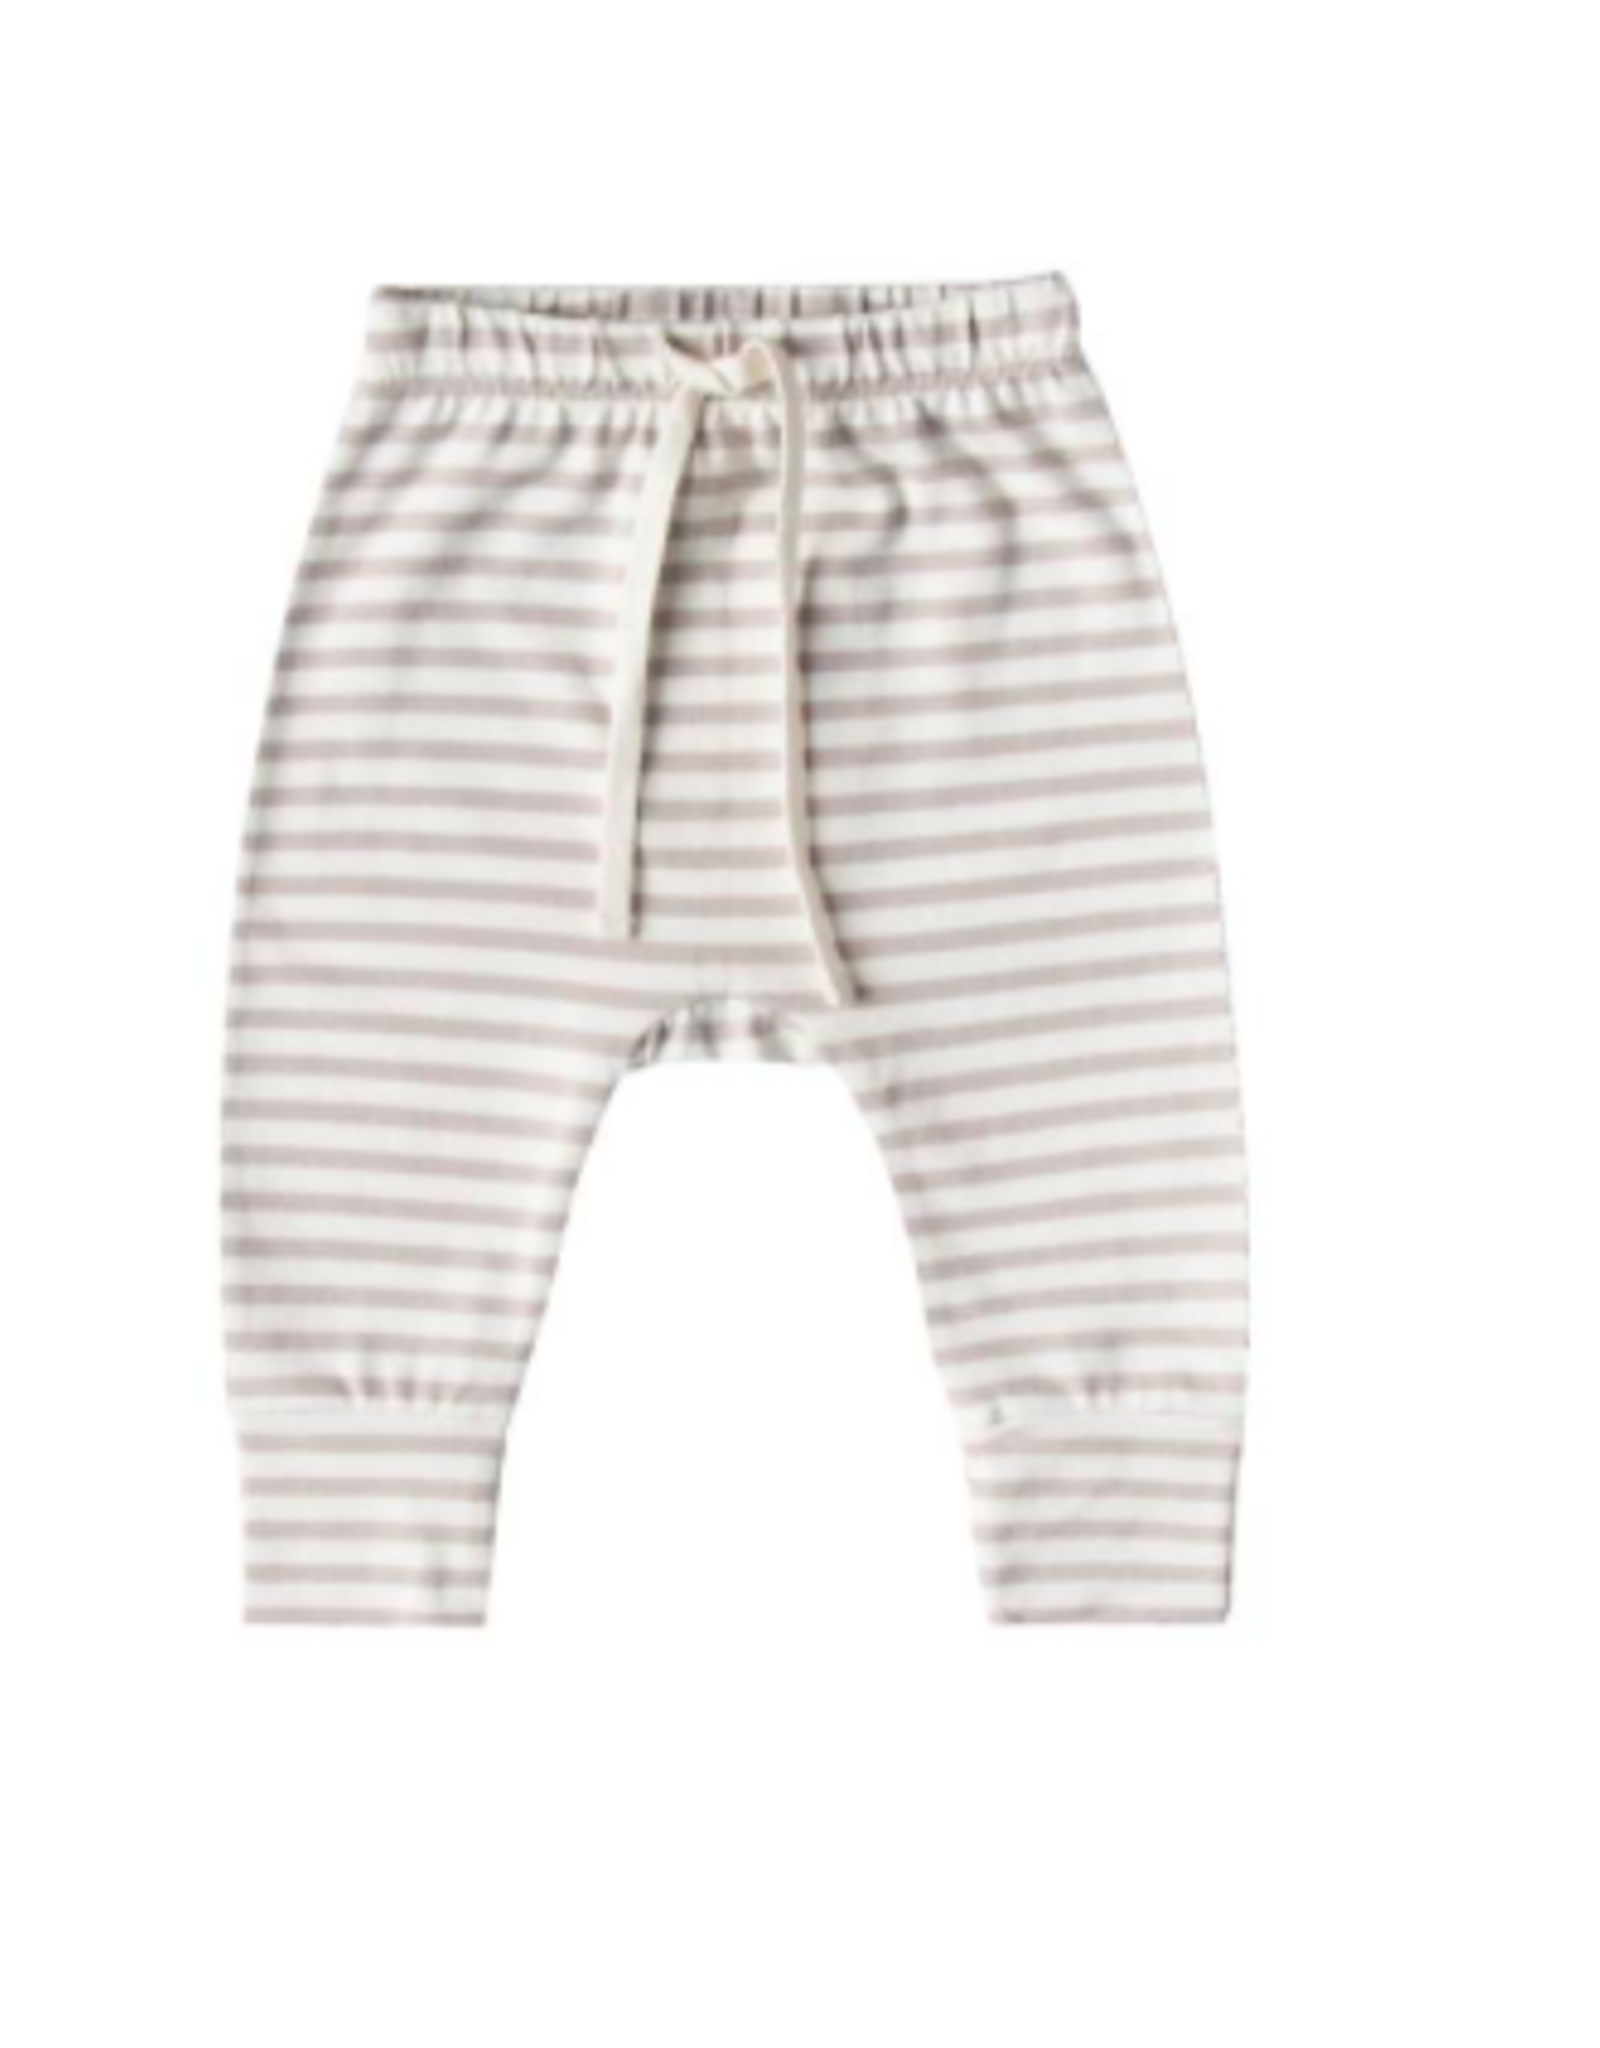 Quincy Mae Drawstring Pants